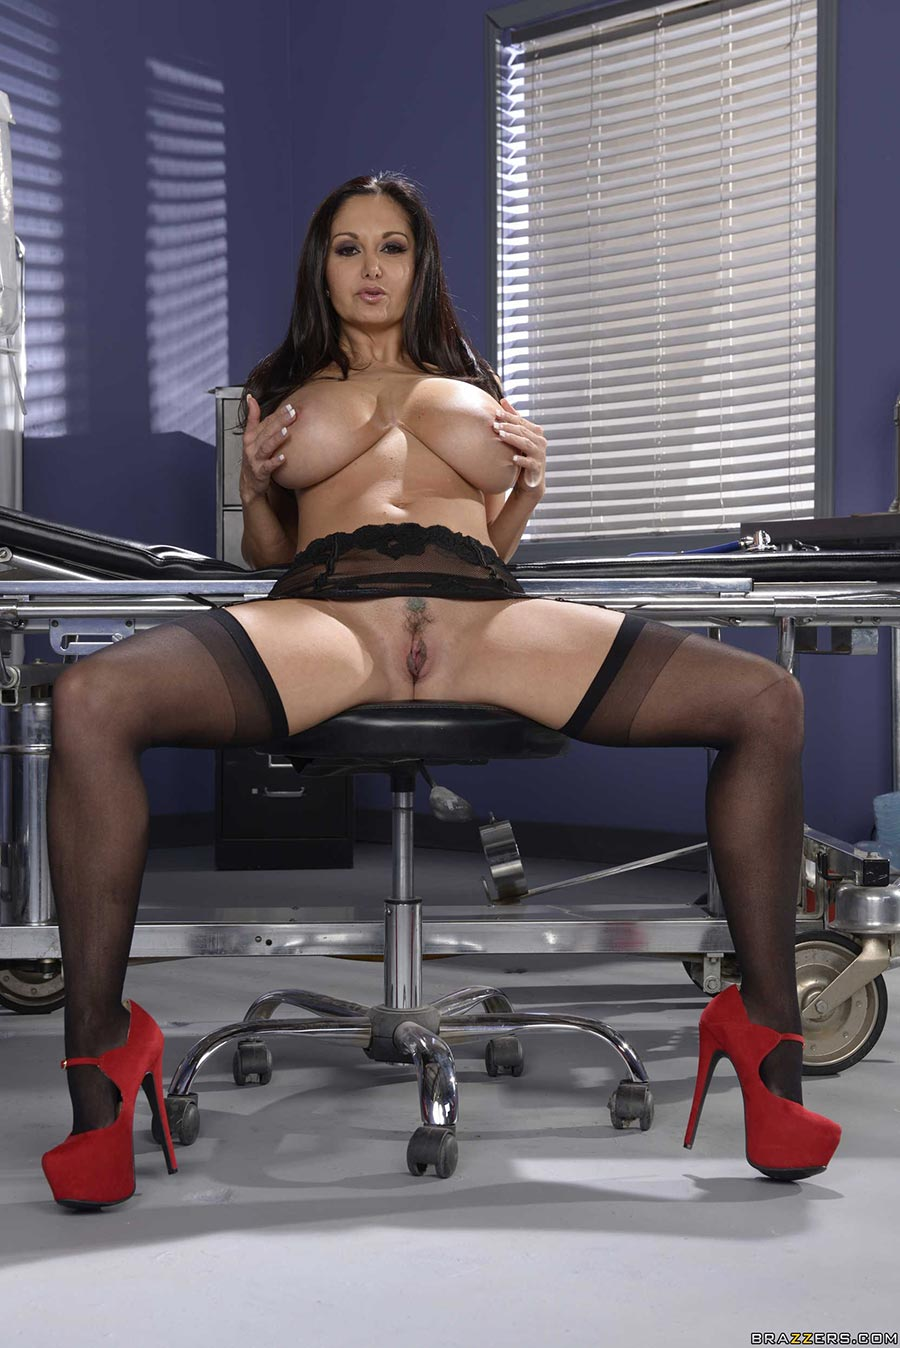 Ava Addams's New pictures